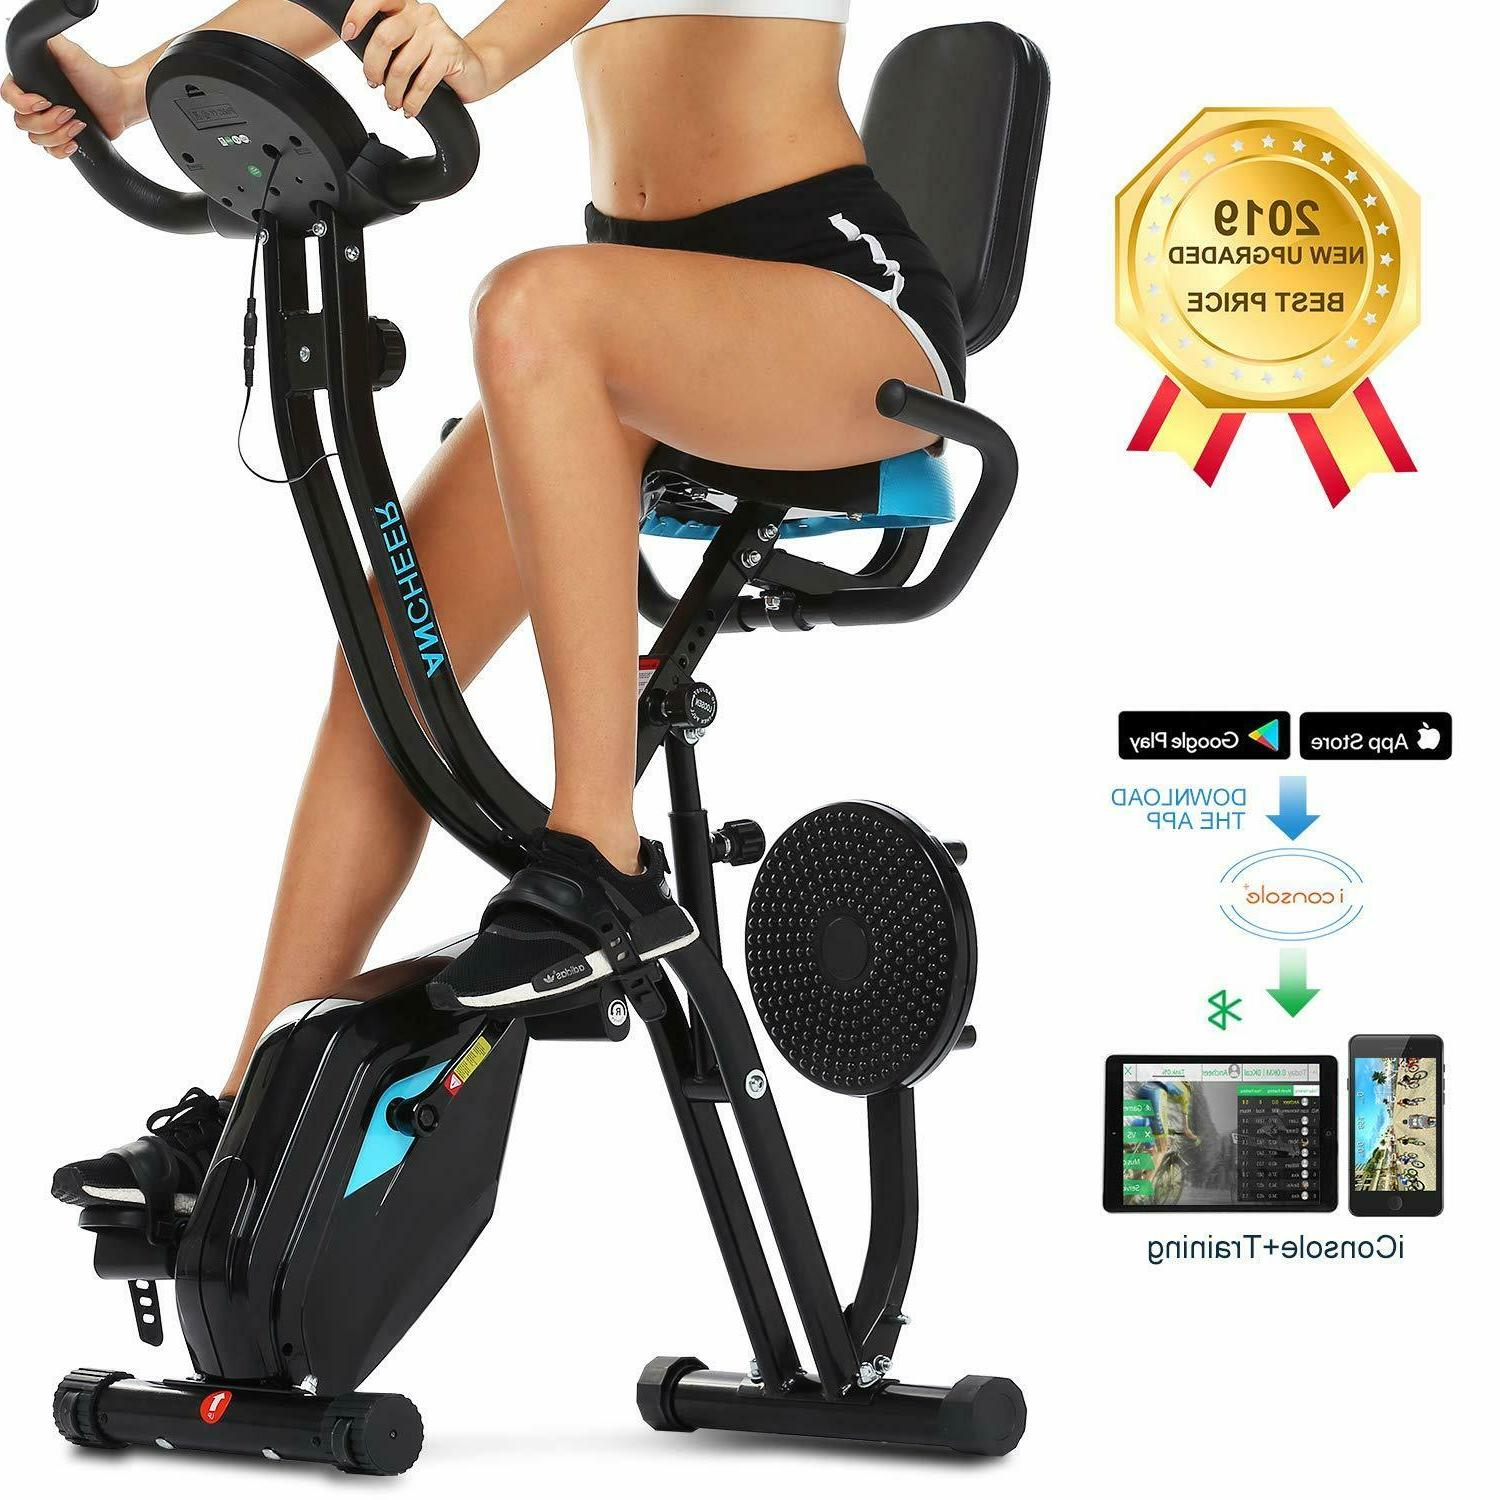 ANCHEER 3-in-1 Folding Stationary Exercise Bike,Slim Cycle I